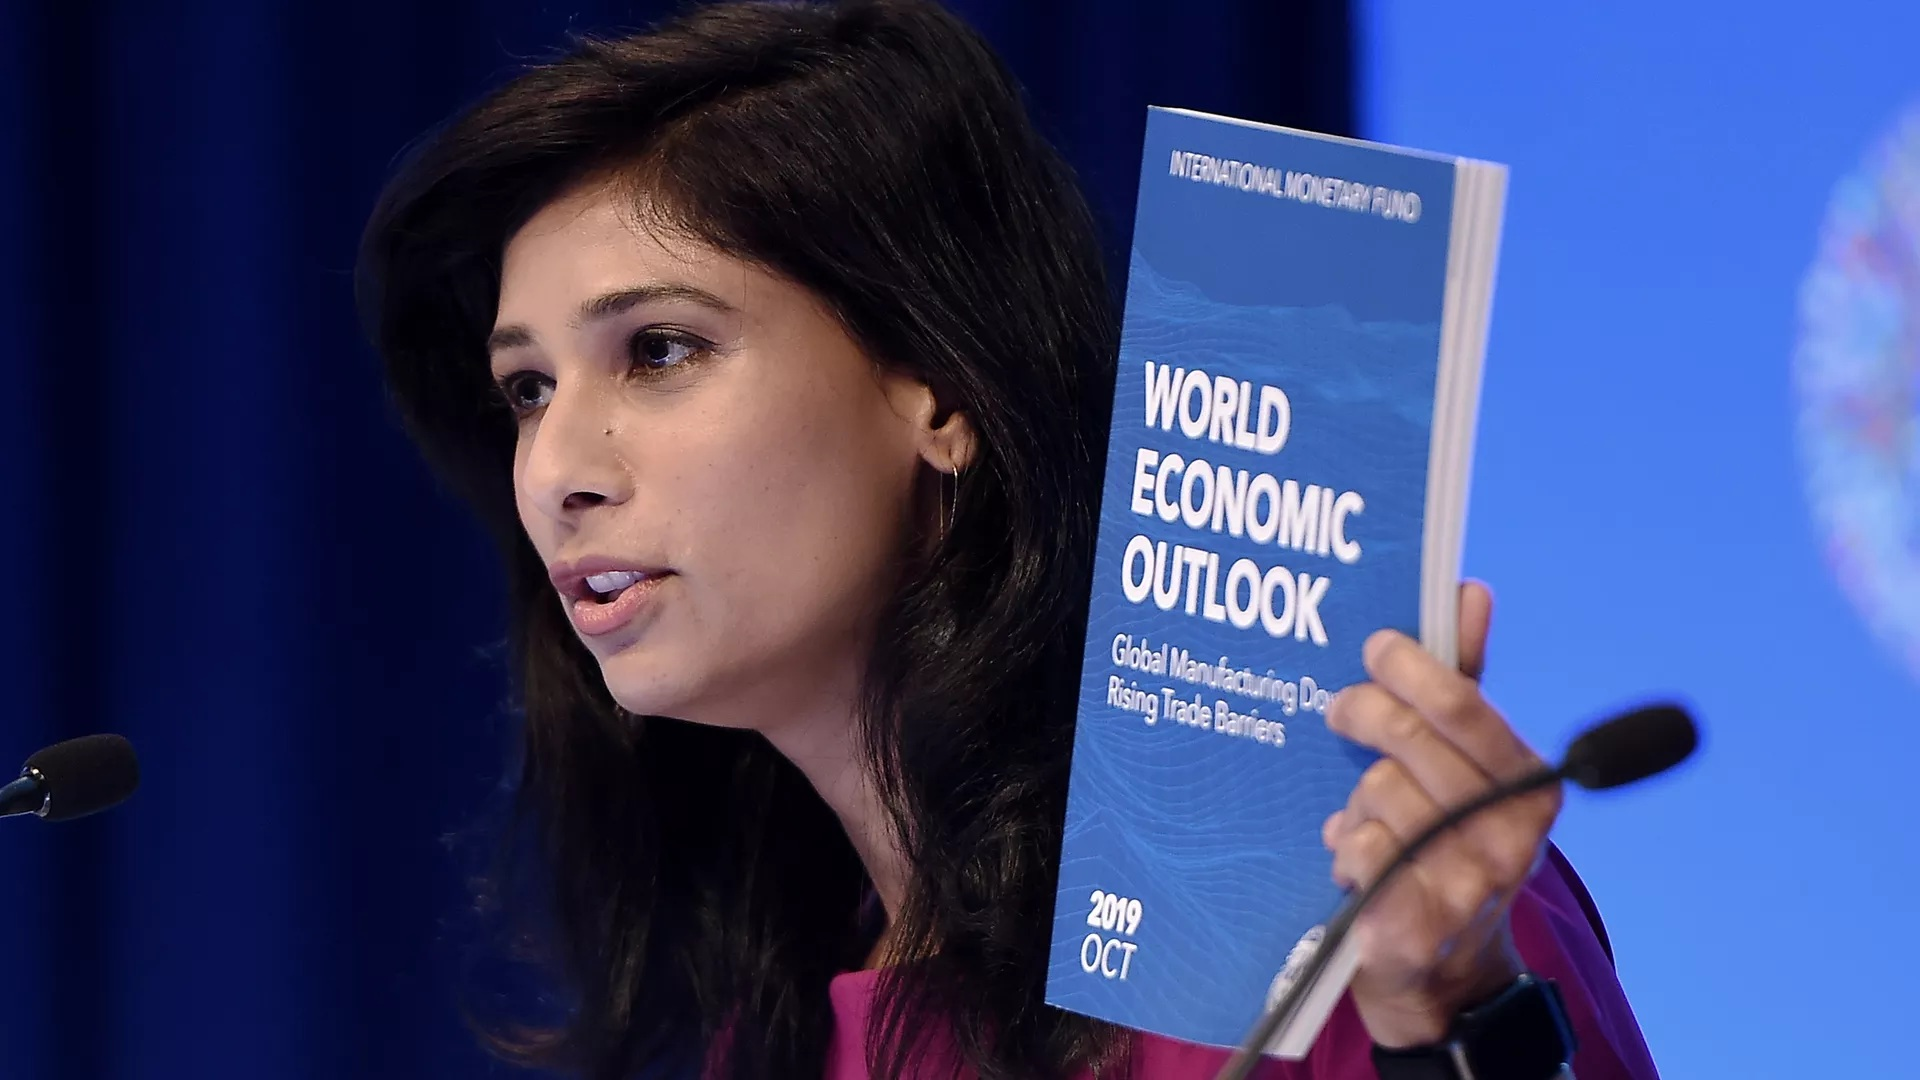 Gita Gopinath chief economist and director of the Research Department at the International Monetary Fund